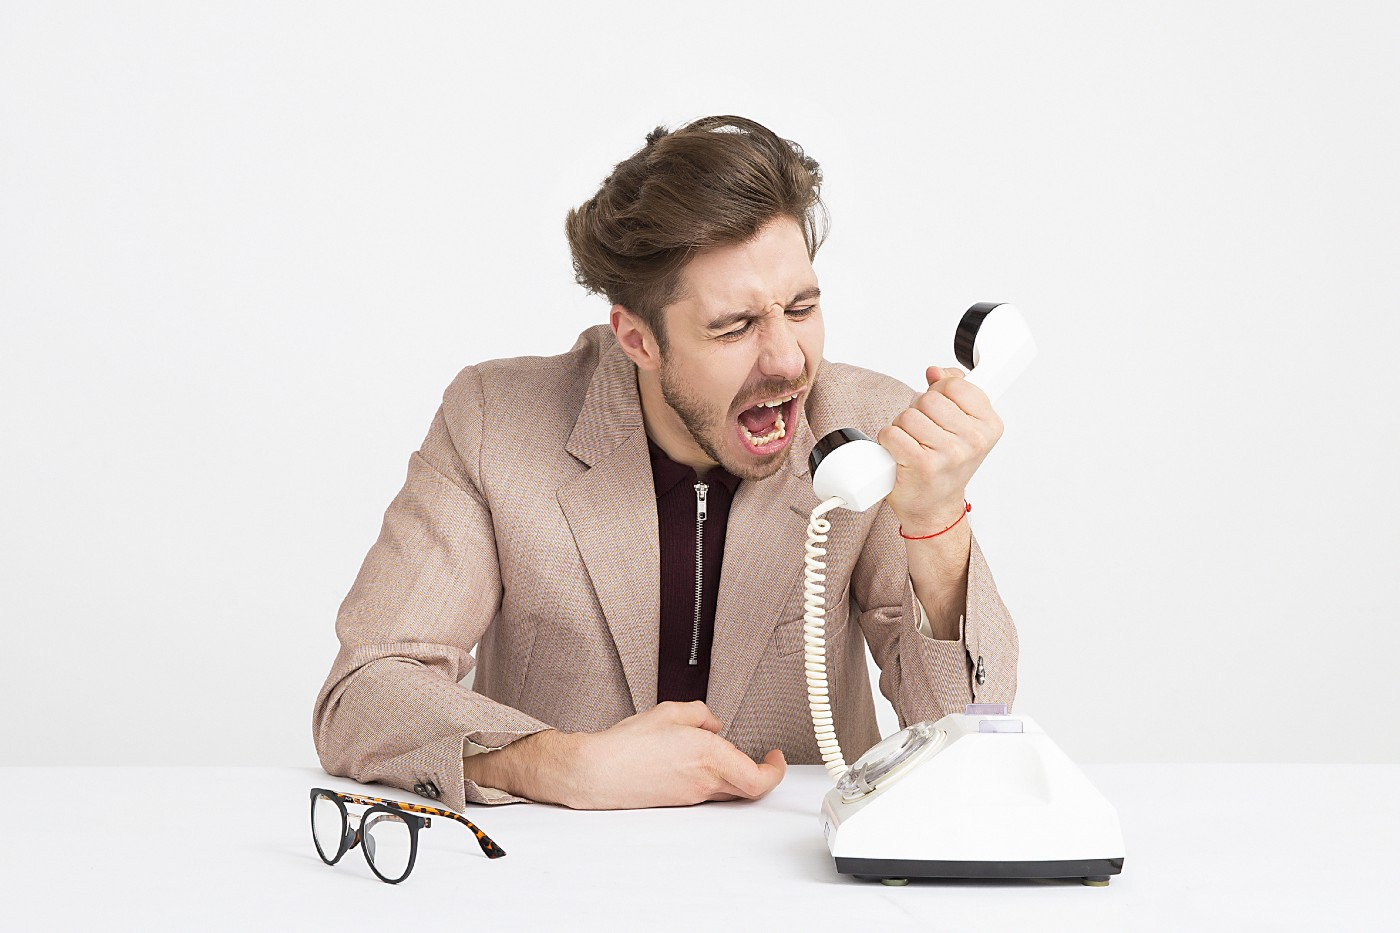 A pair of glasses sit on a white table next to an old model phone being held by a male yelling into the receiver